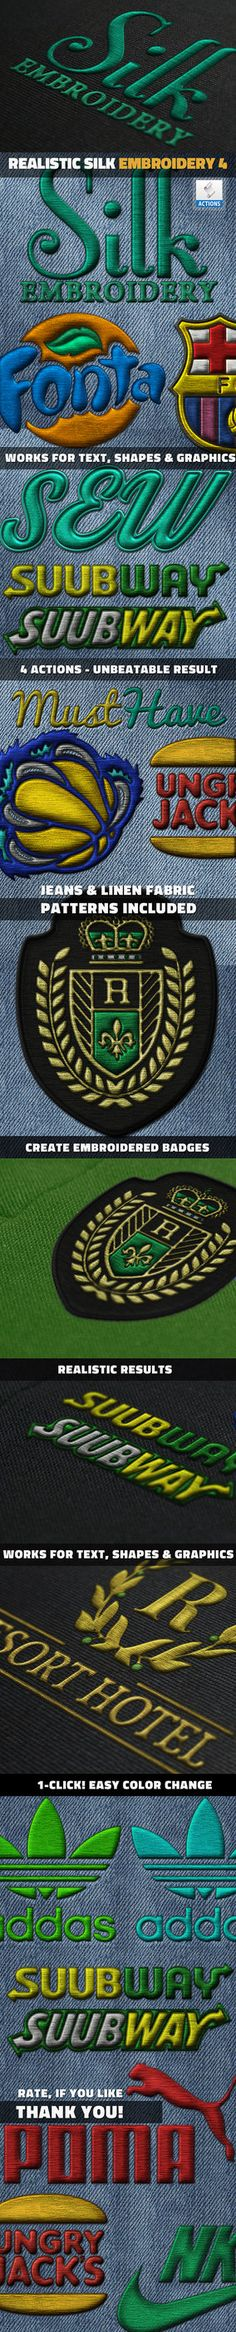 DOWNLOAD:goo.gl/UAG61q This Photoshop action will allow you tocreate a realistic silk embroidery effect from text and shapes. There are 4 main actions included plus 7 actions for customizatio...